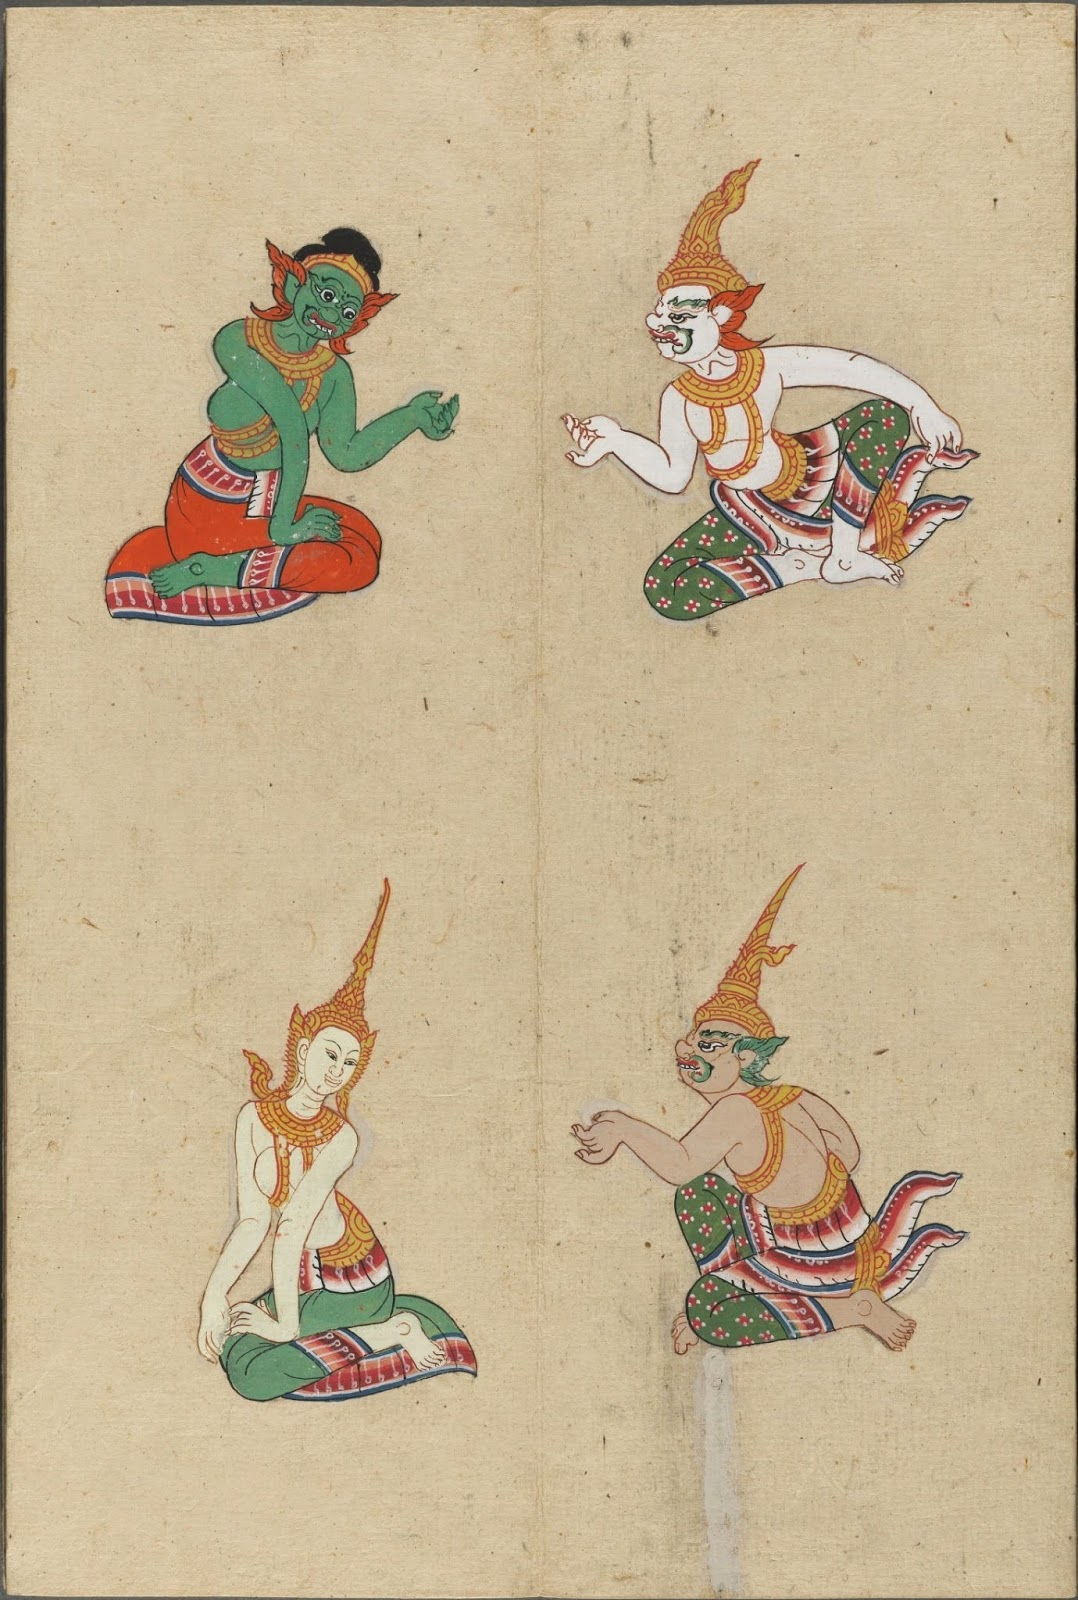 colour painted illustration of mythological gods and devils